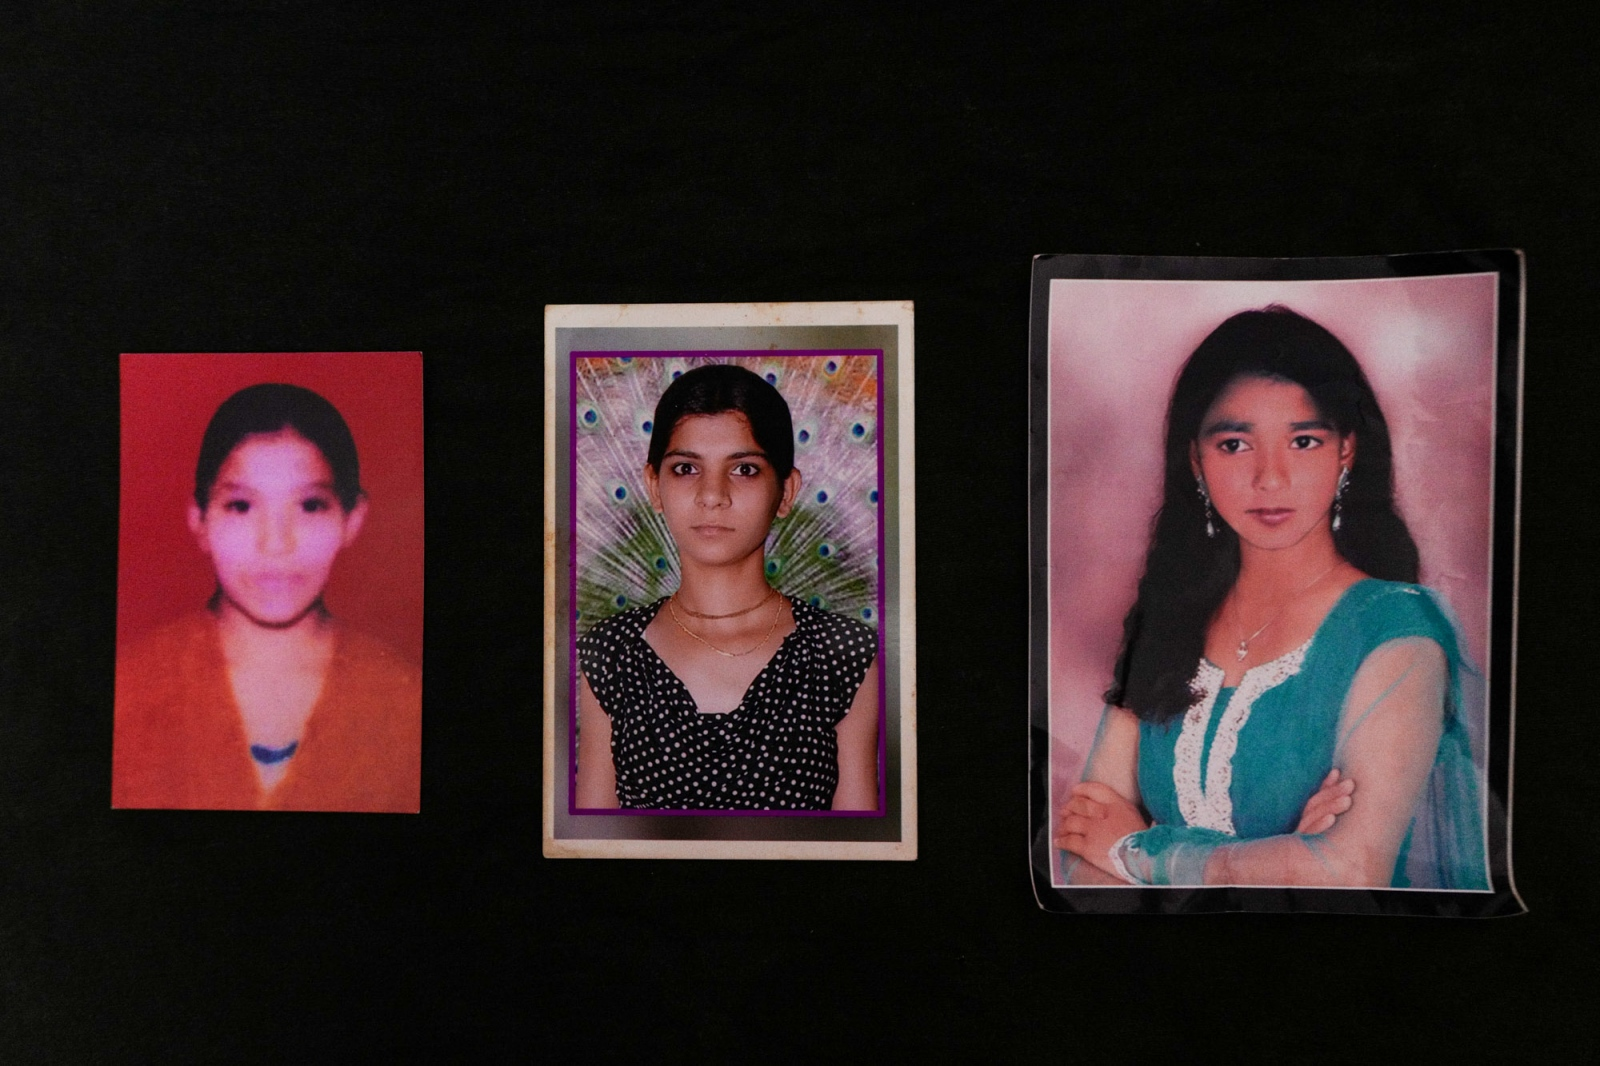 Agra, Uttar Pradesh, 08 November 2015, From left, portraits of Rupa, Ritu, Dolly before the acid attack